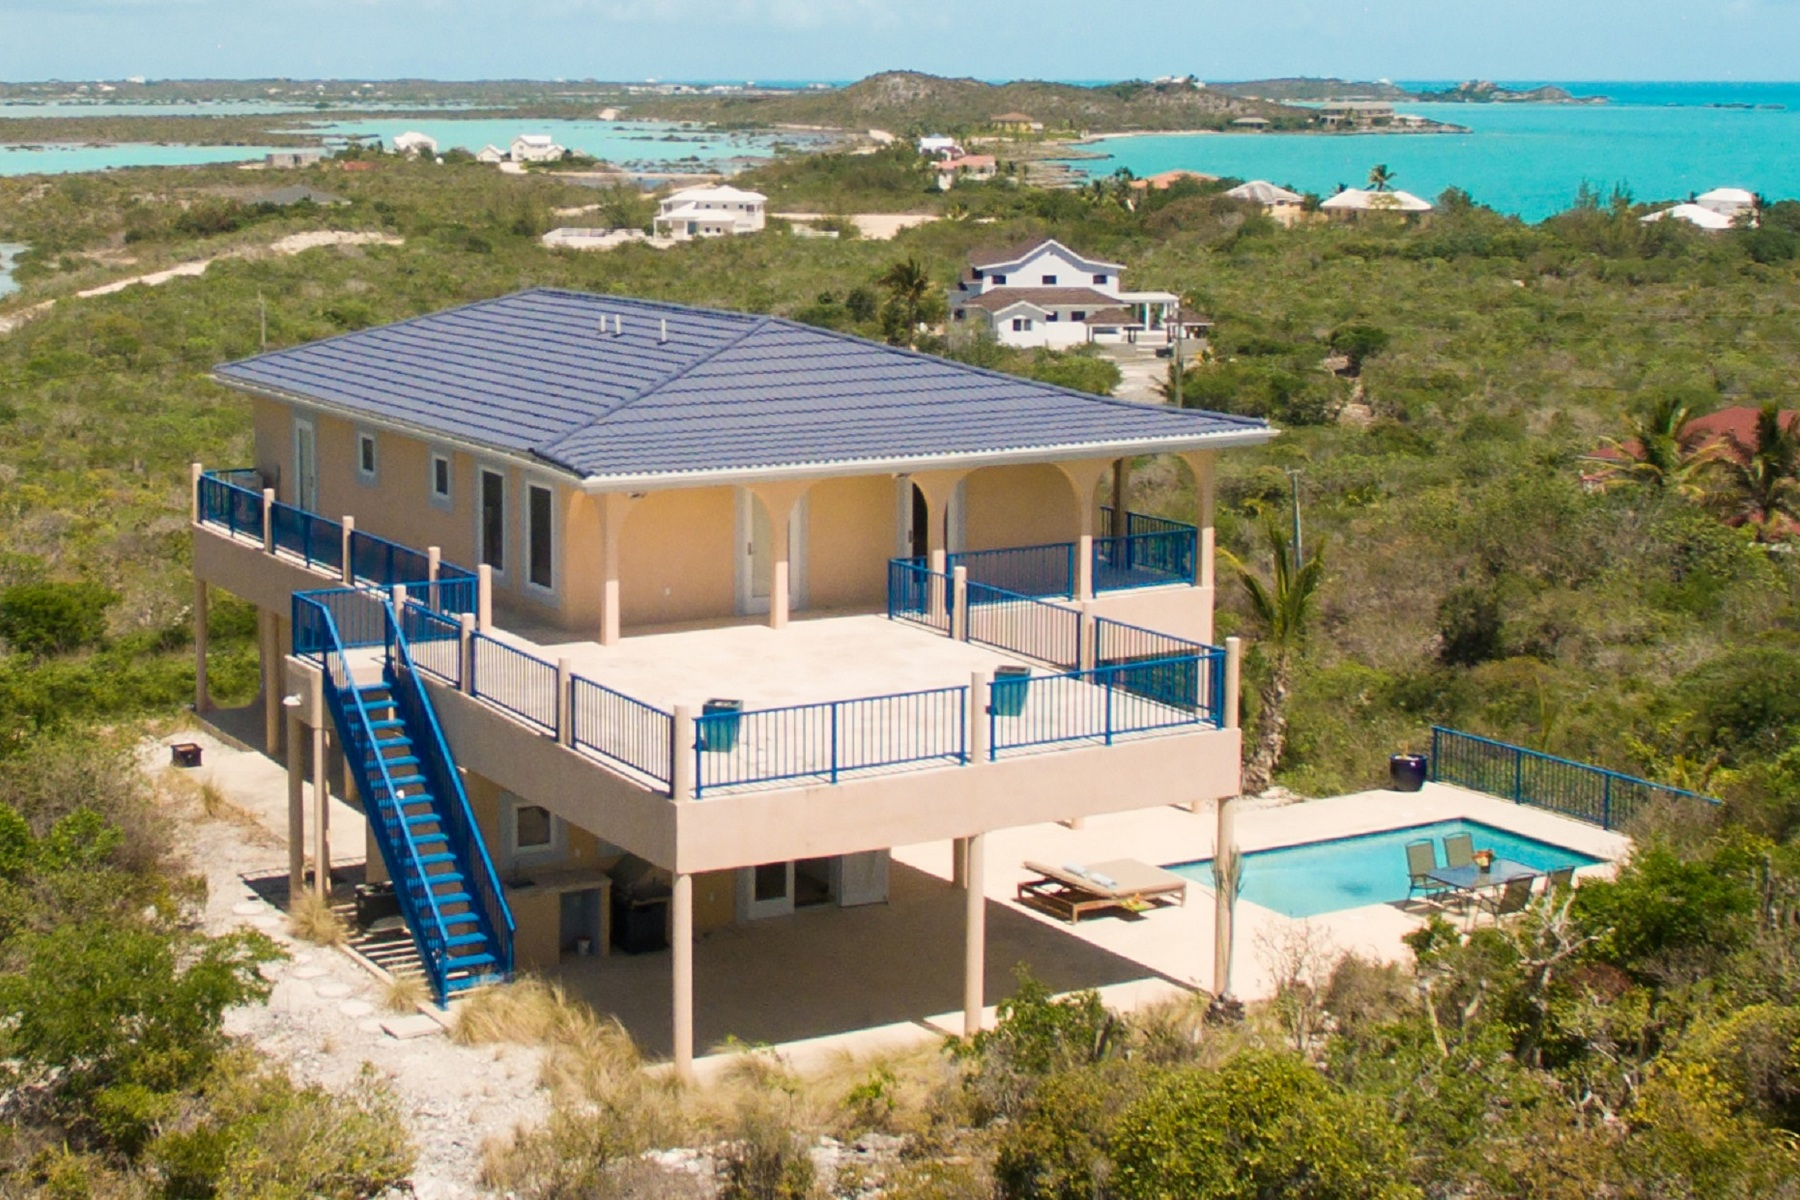 Single Family Home for Sale at 16 Grouper Court Oceanview Turtle Tail, Providenciales, TCI Turks And Caicos Islands